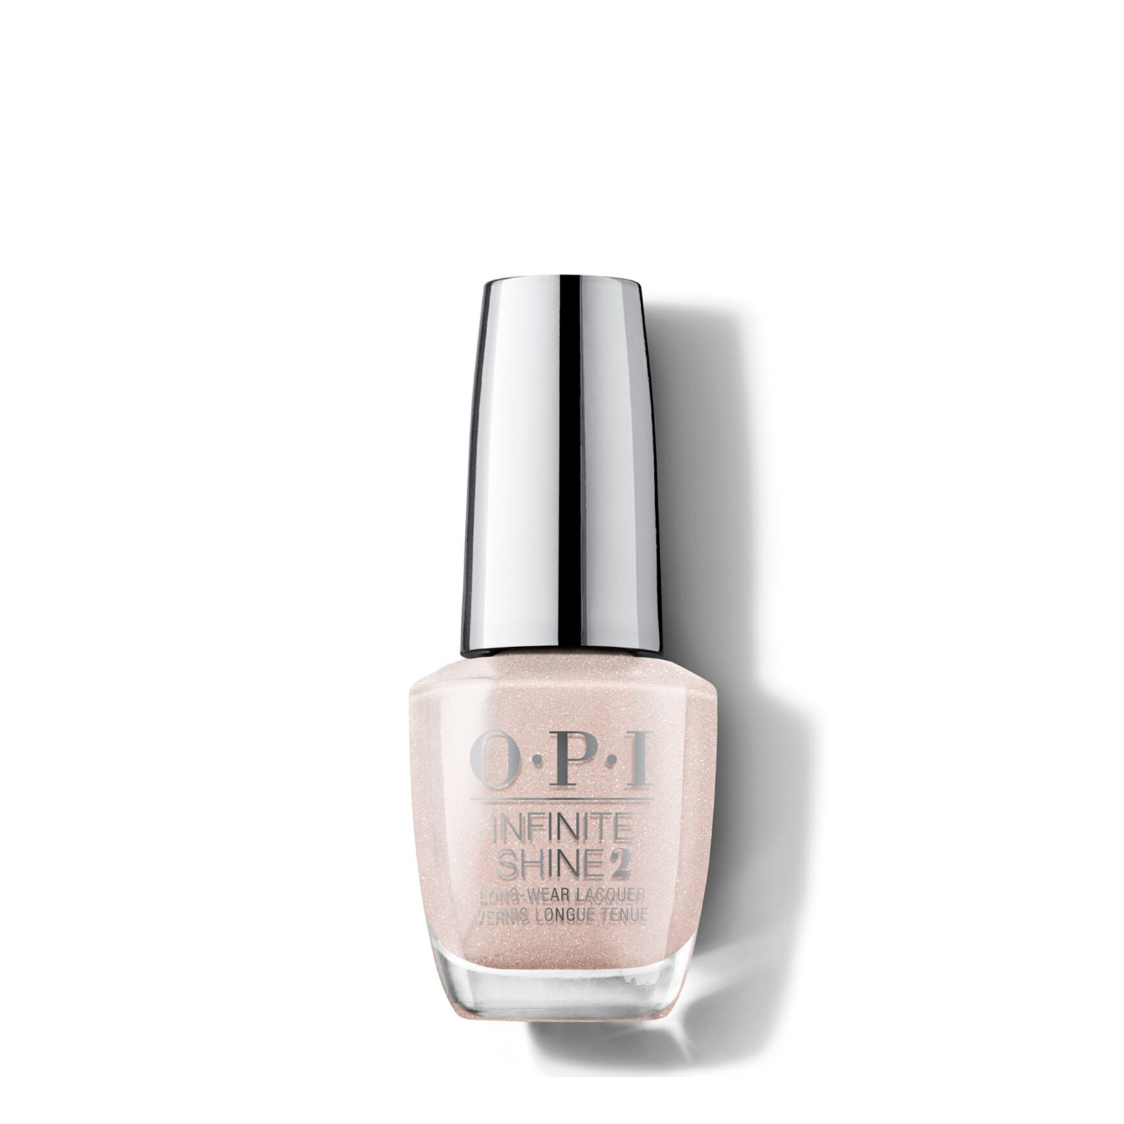 Opi Sheers 2019 Infinite Shine Throw Me a Kiss 15ml